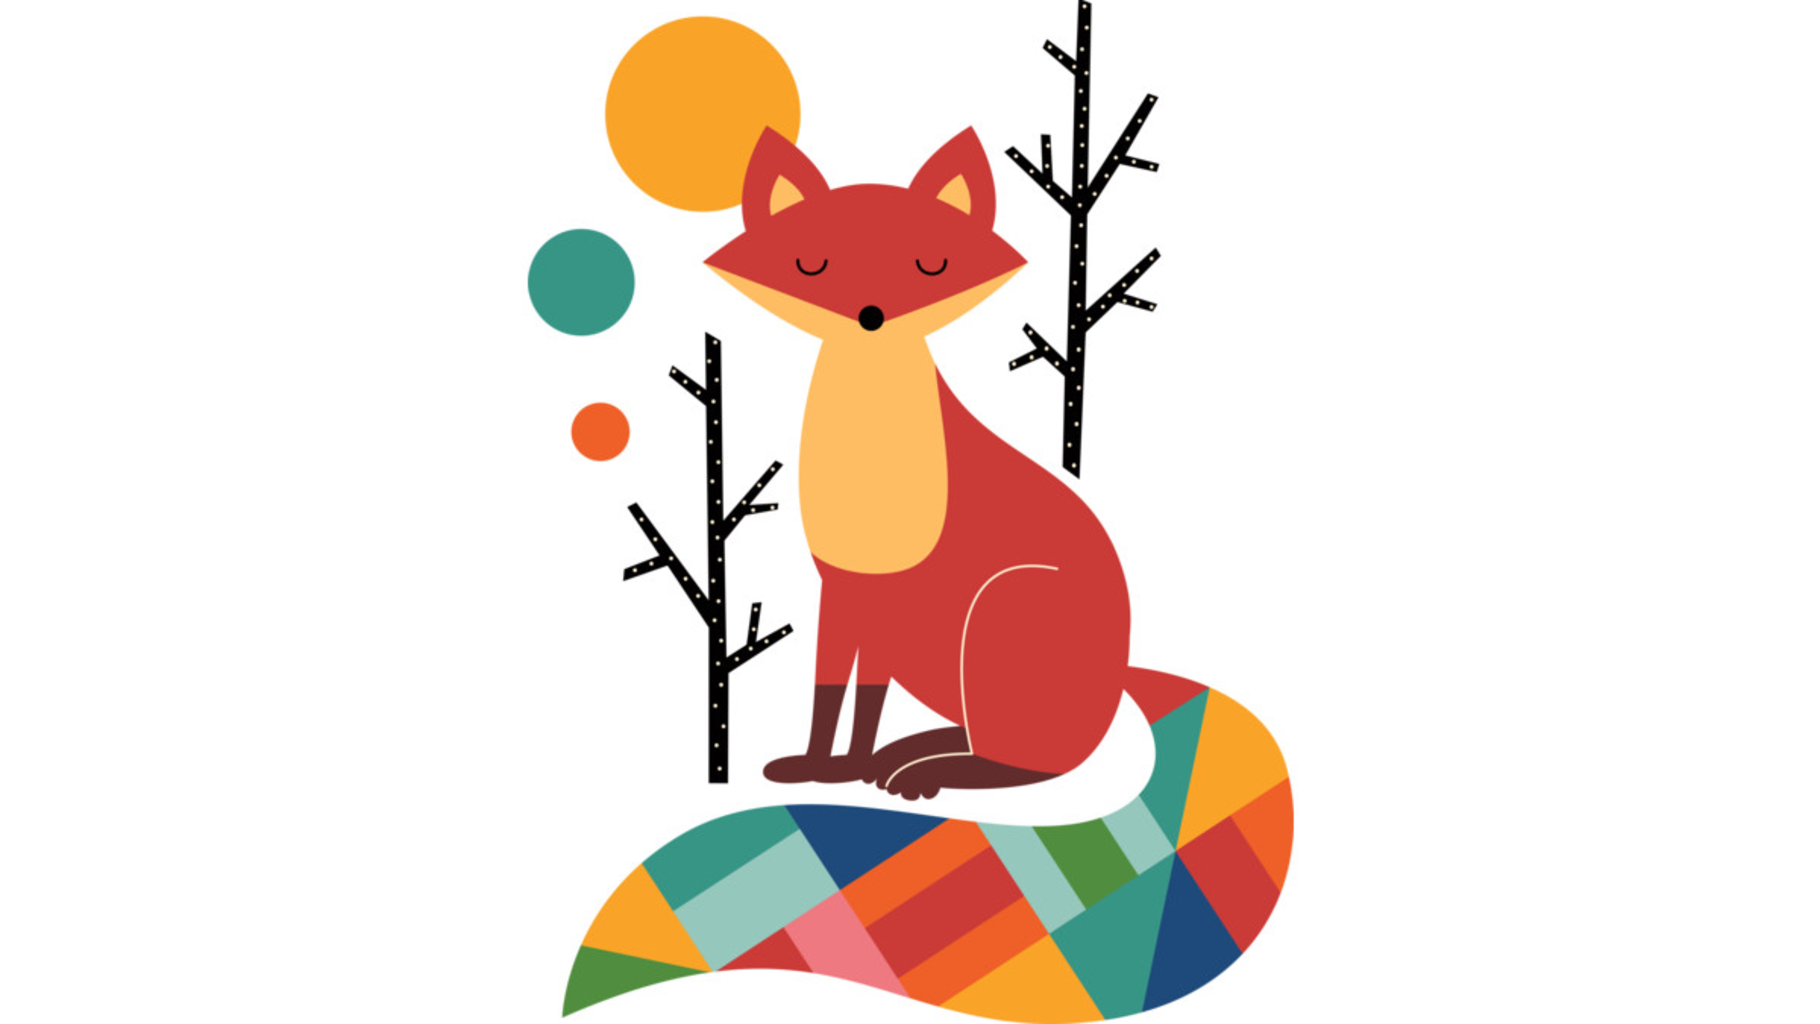 Design by Humans: Rainbow Fox